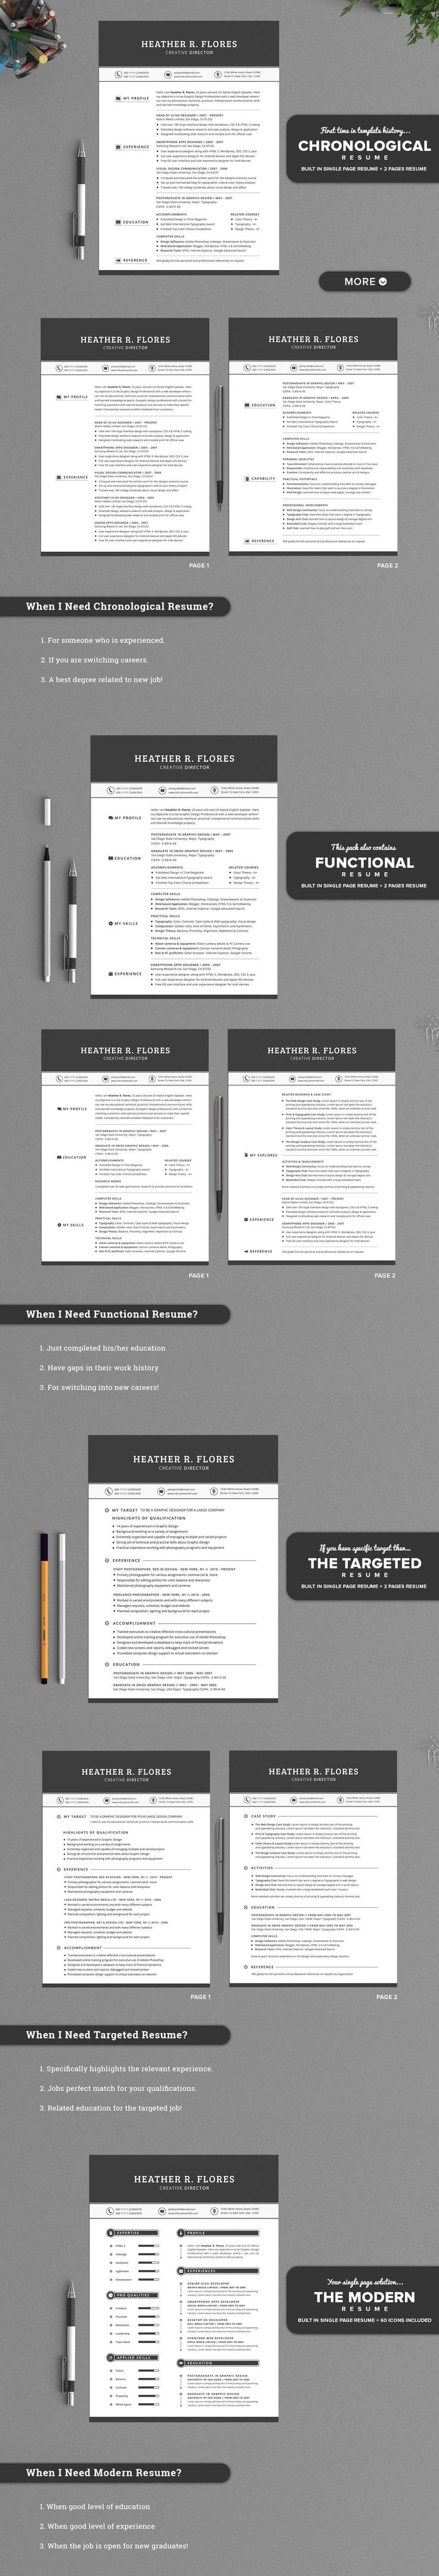 cv and covering letter%0A All in One Timeless Resume CV Pack by SNIPESCIENTIST on Creative Market    Graphic   Pinterest   Resume cv and Creative